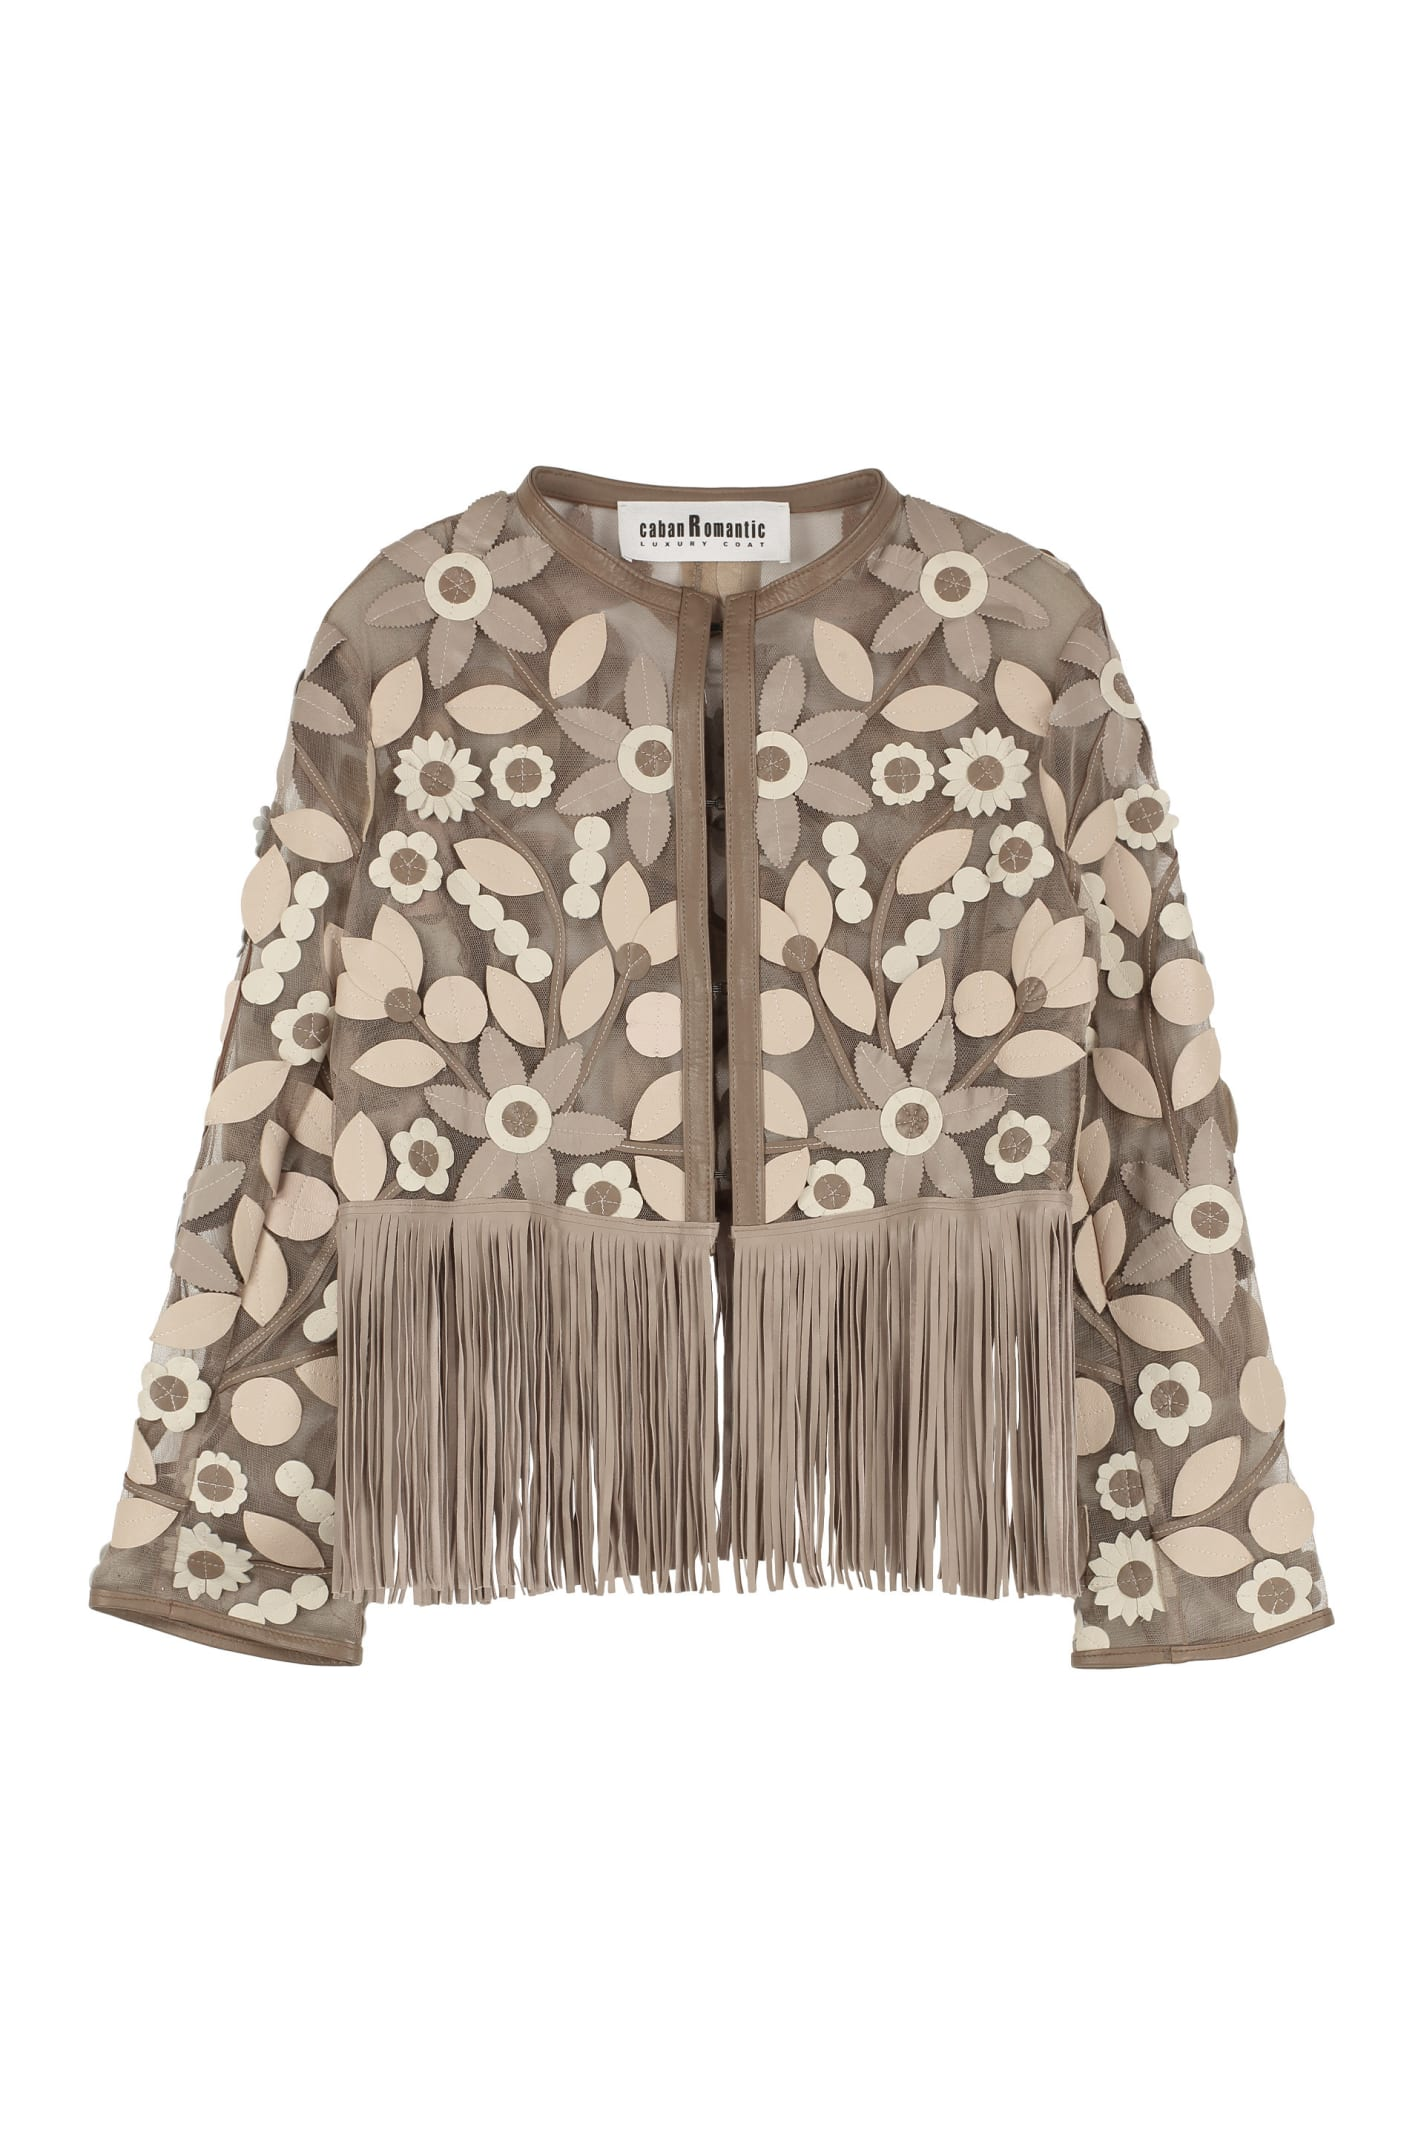 Caban Romantic Leather Fringed Jacket